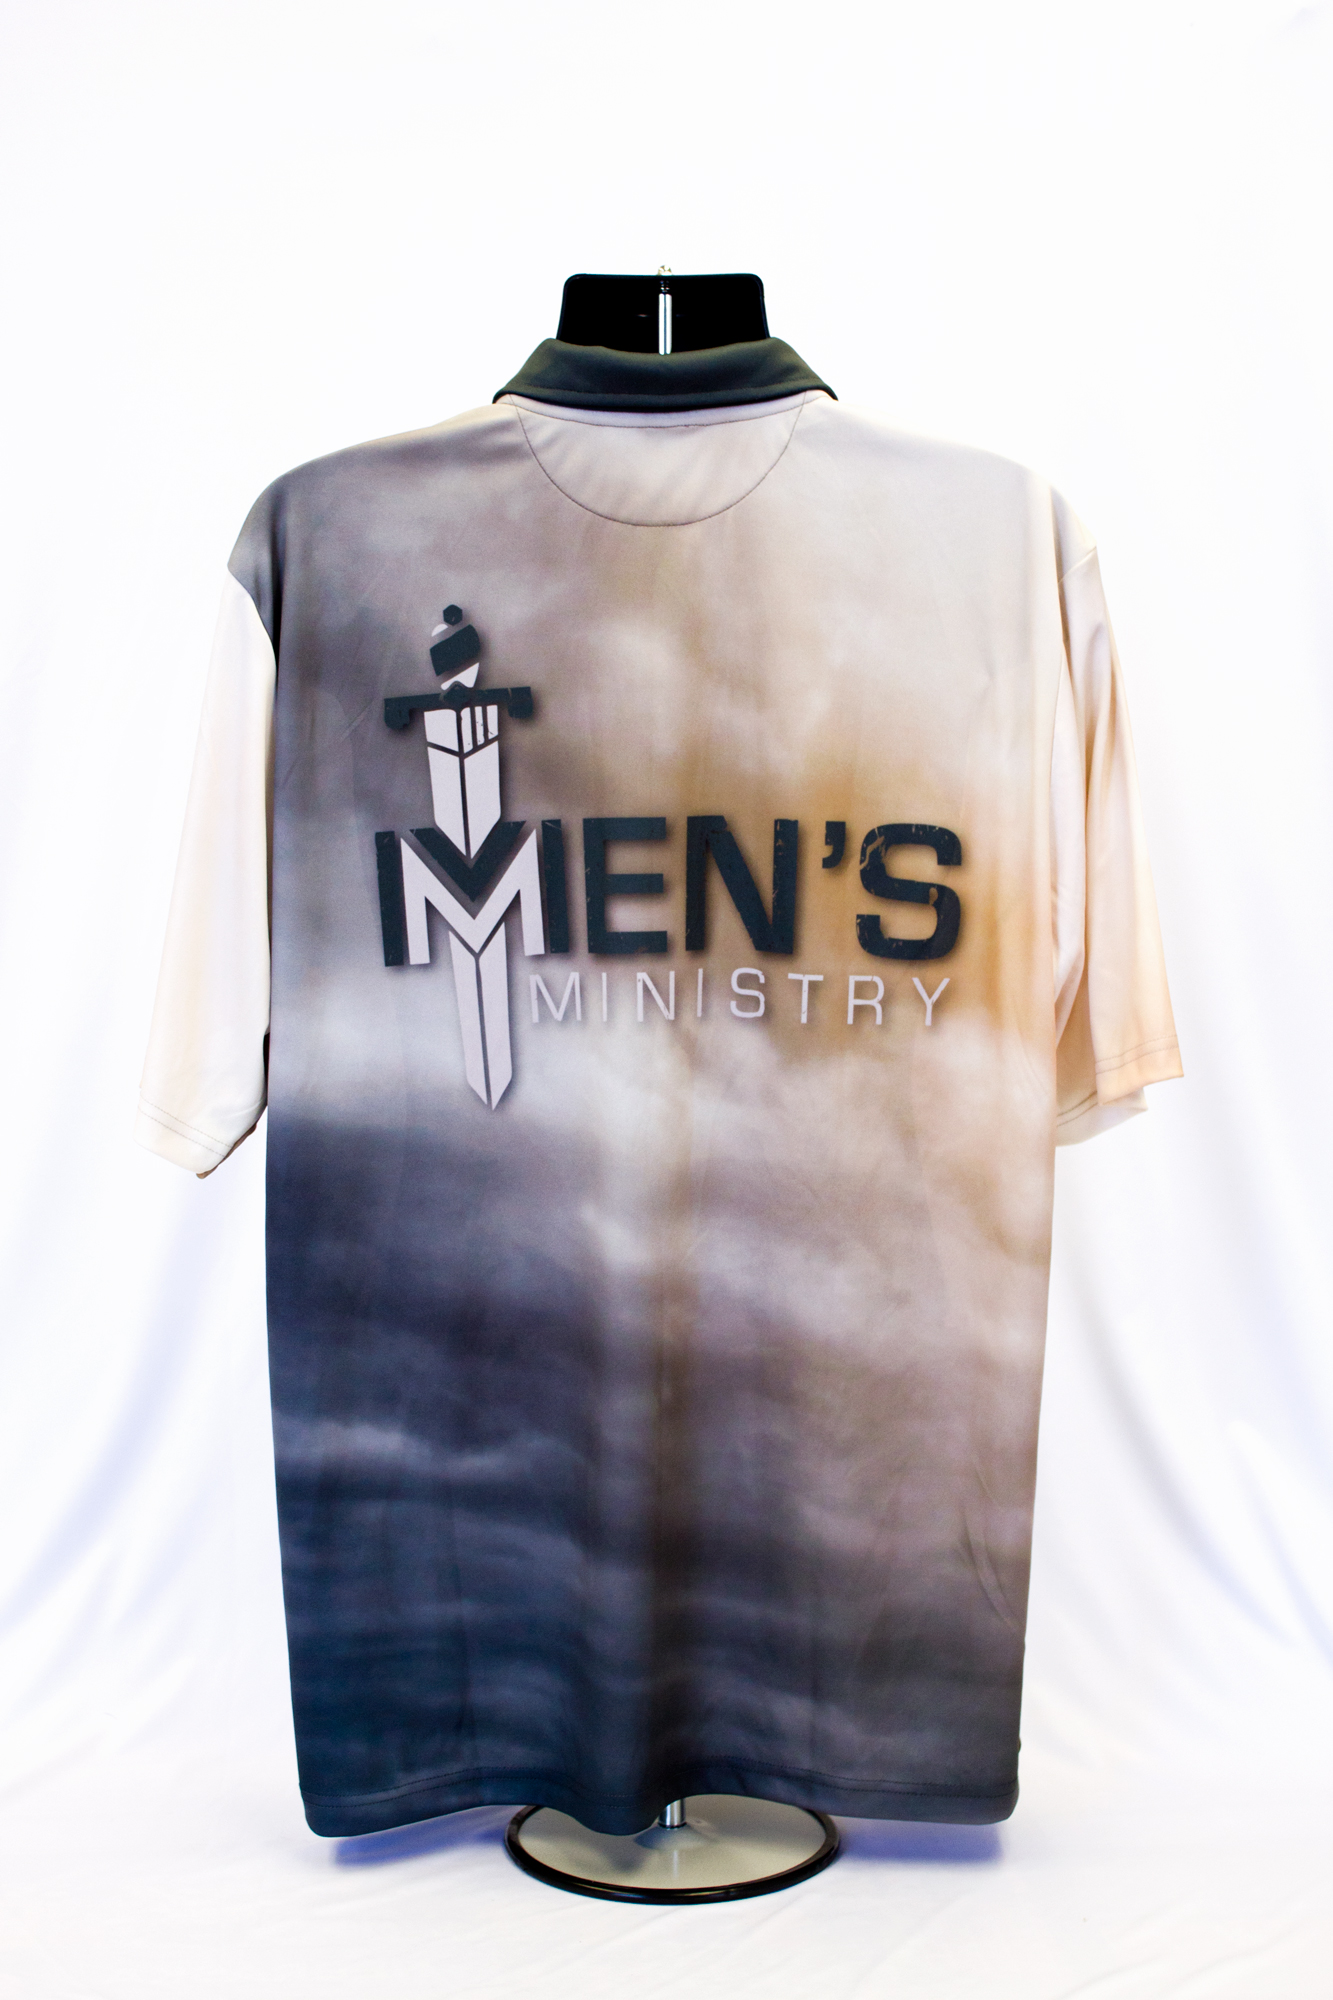 Men's Ministry Group - Back